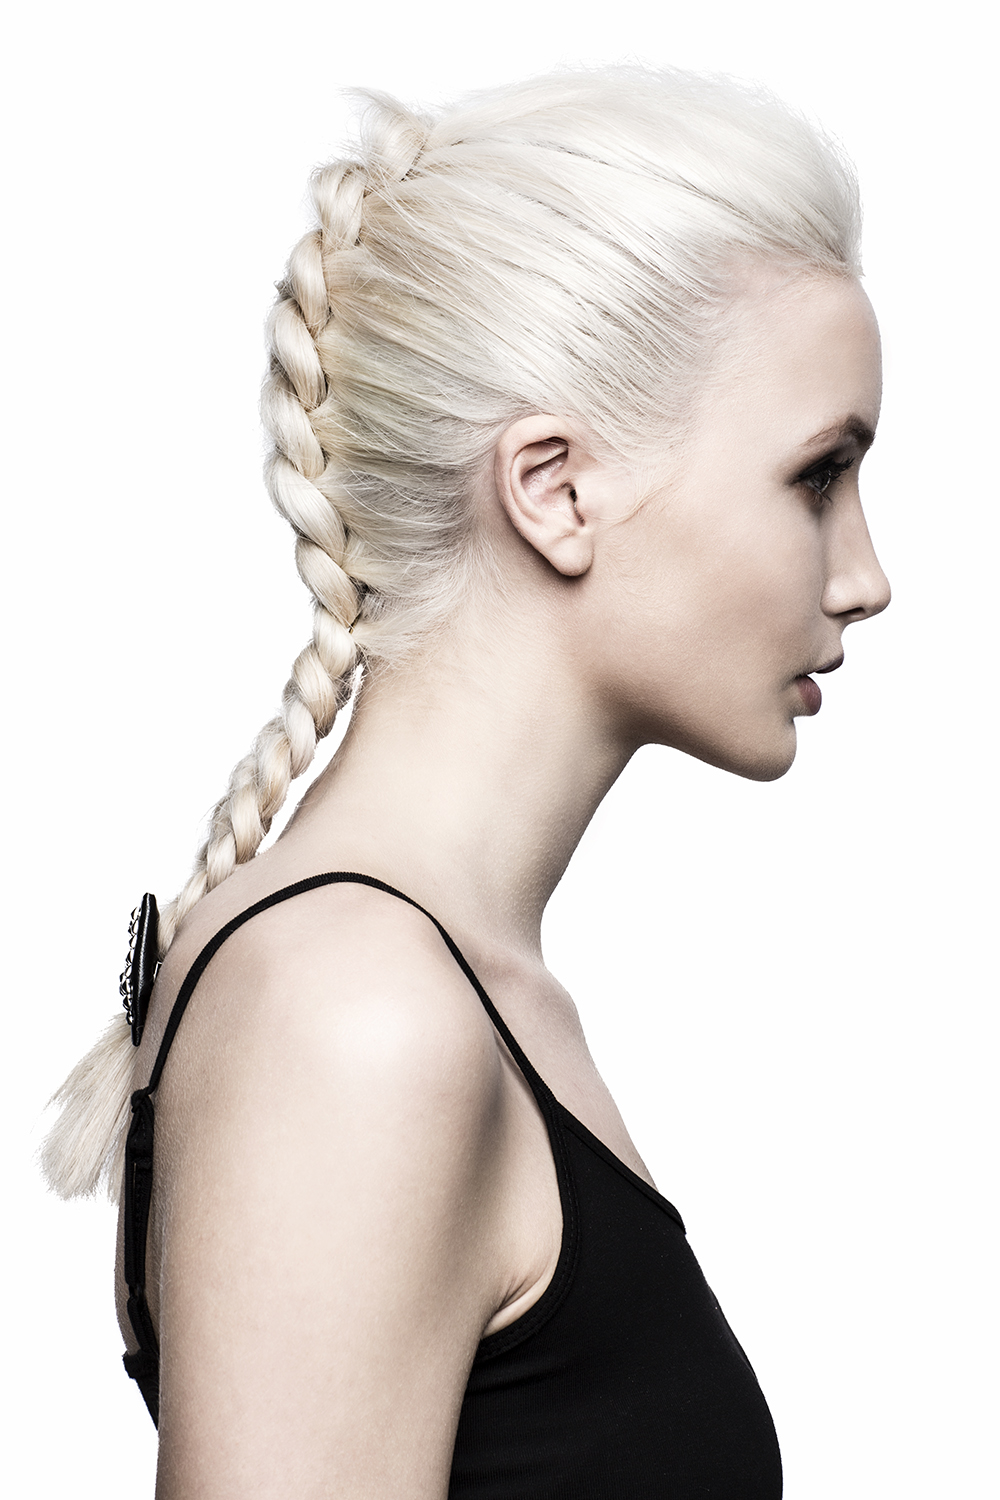 Platinum blonde Dutch braid